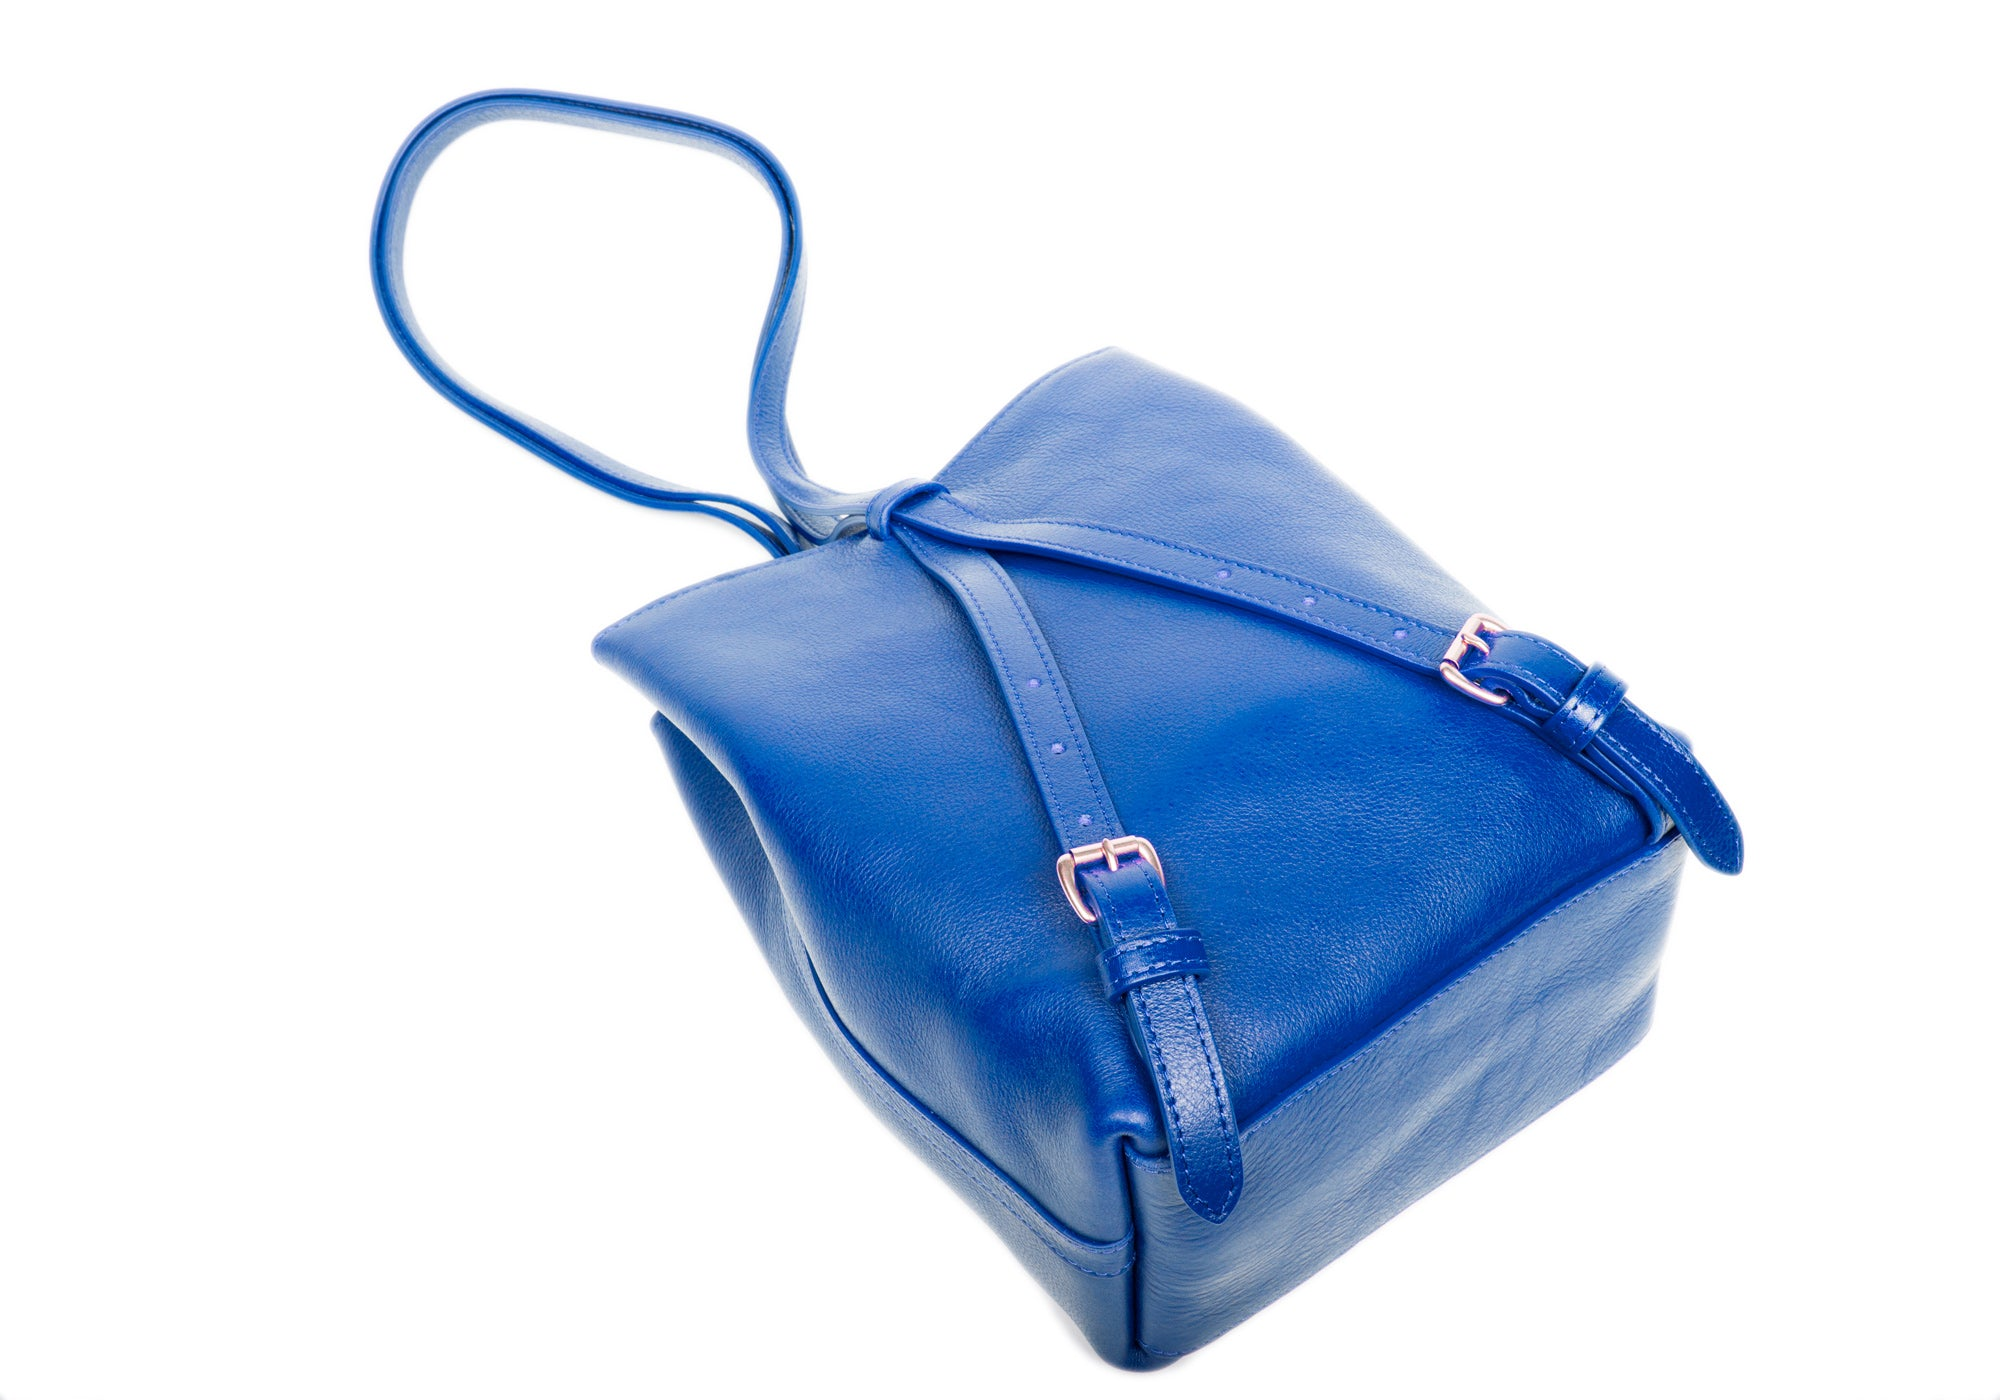 The Mini Sling Backpack Electric Blue